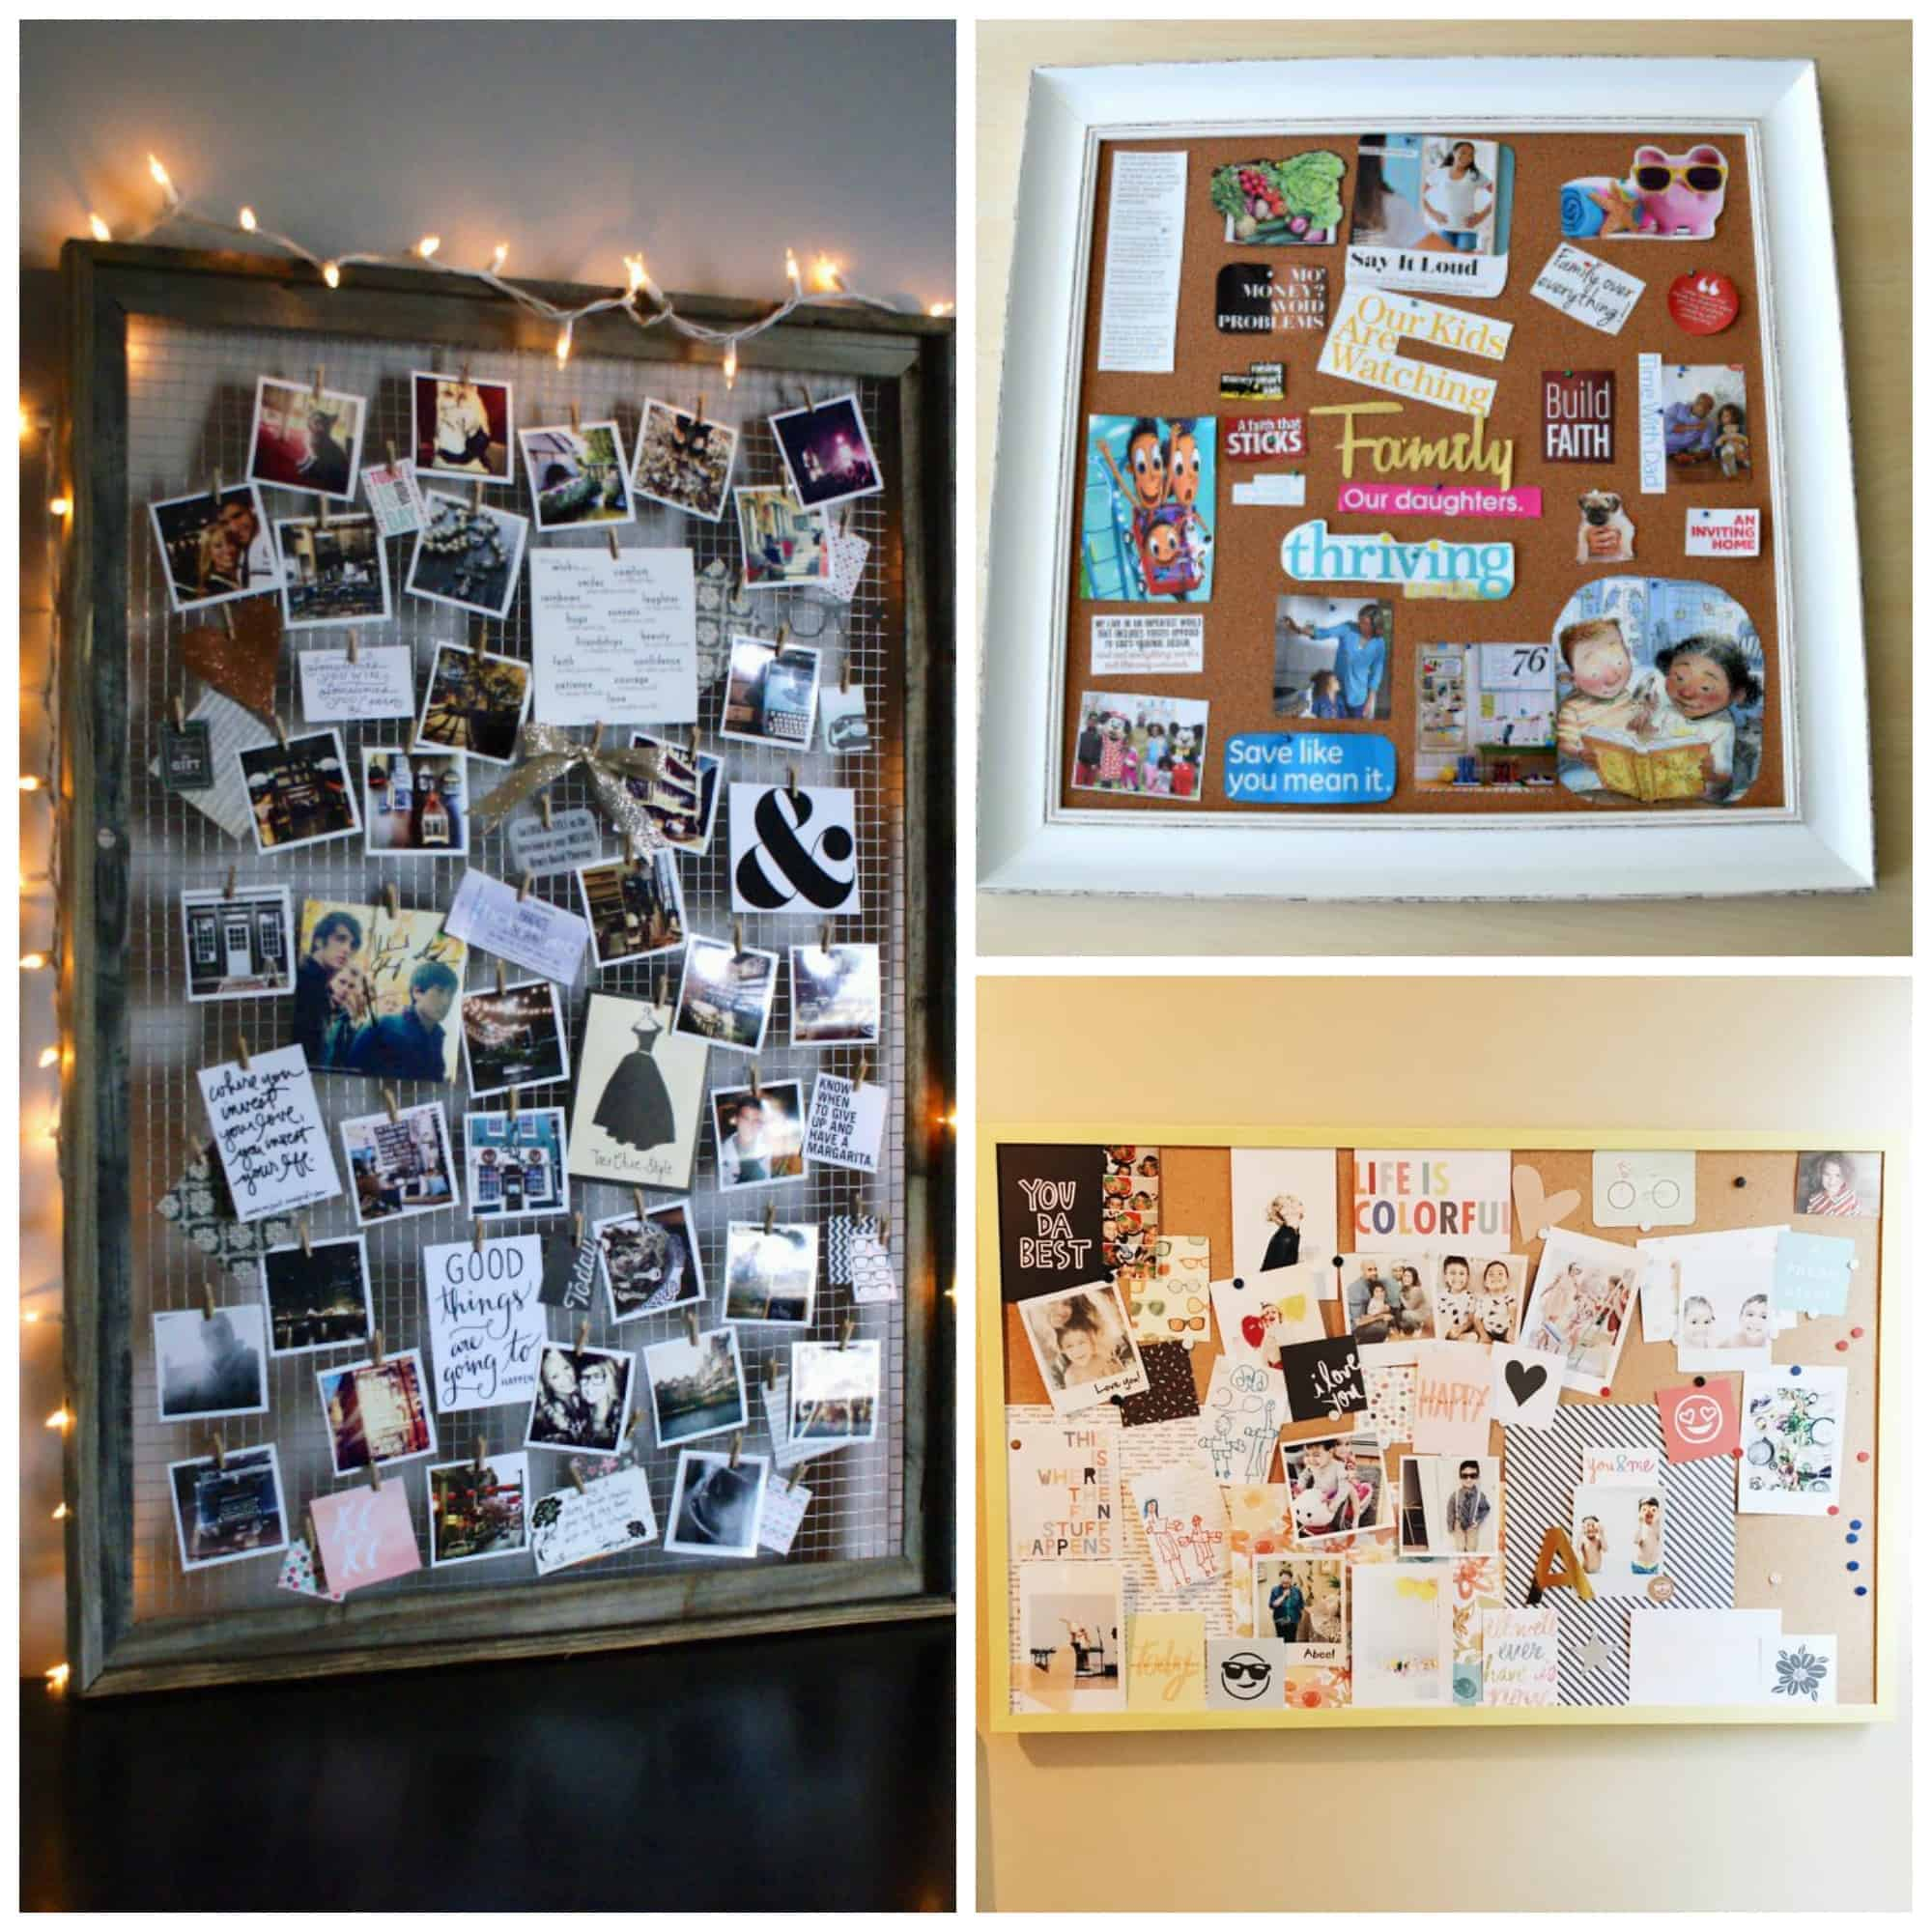 10 diy vision board ideas that will inspire you to do great things this is exactly what i wanted amazing diy vision board ideas great ideas for solutioingenieria Image collections